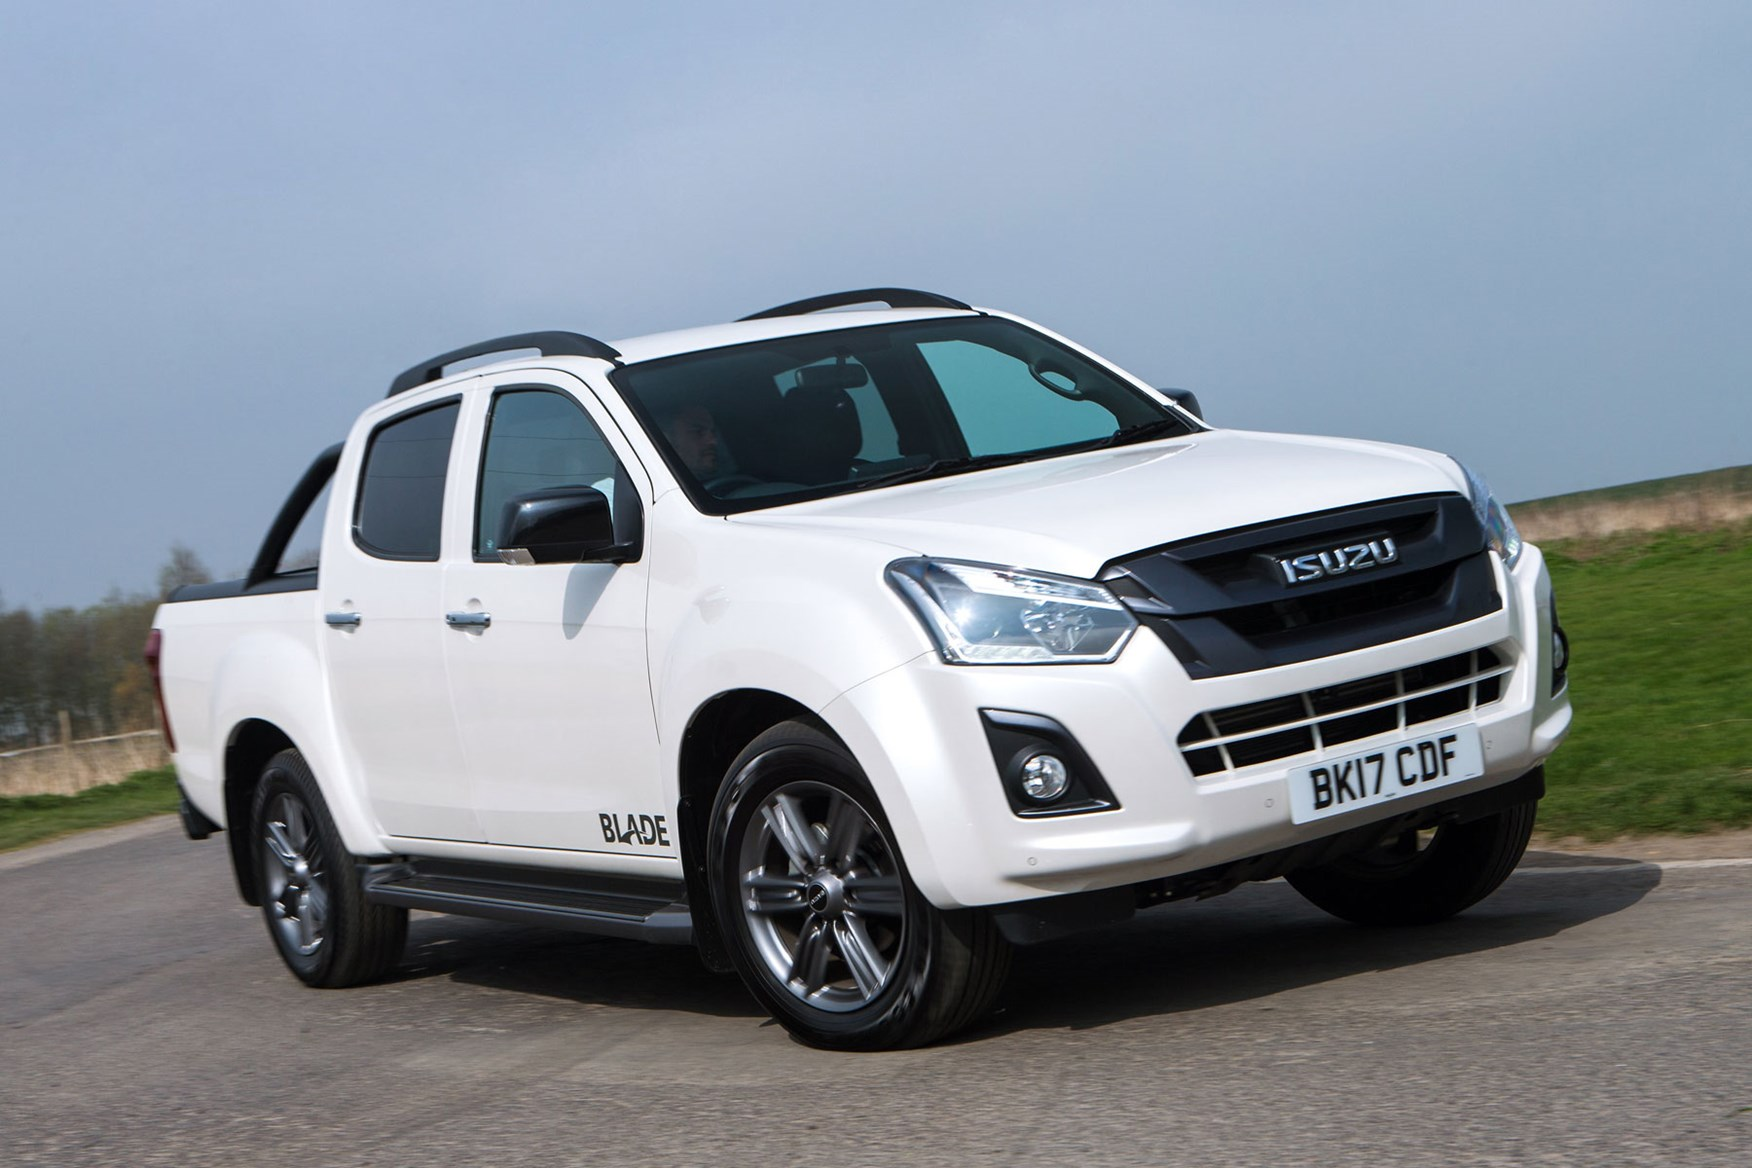 Pickup truck group test review - which are the best pickups